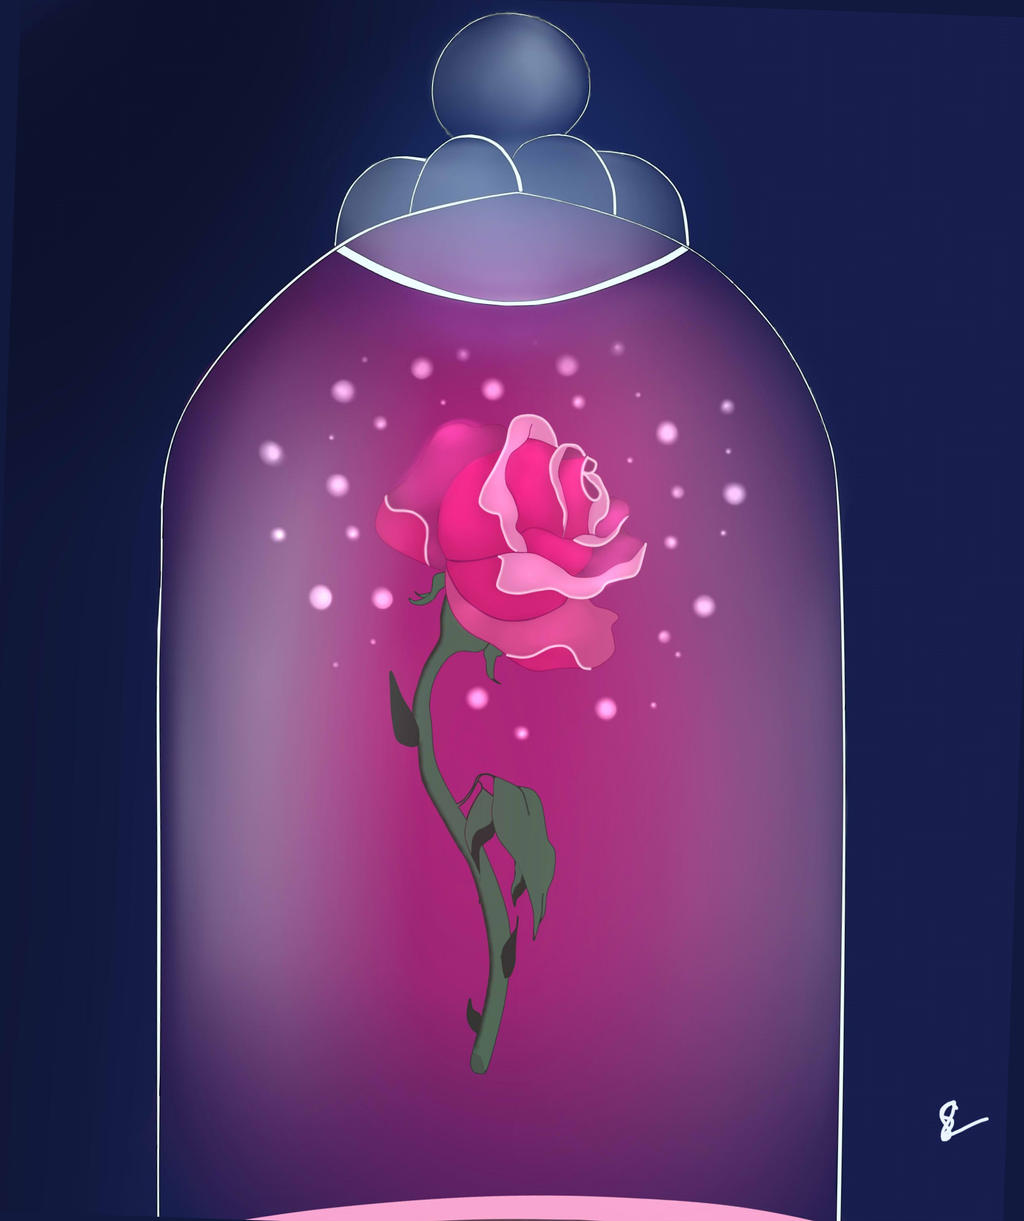 enchanted rose by oakwolf6554 on deviantart